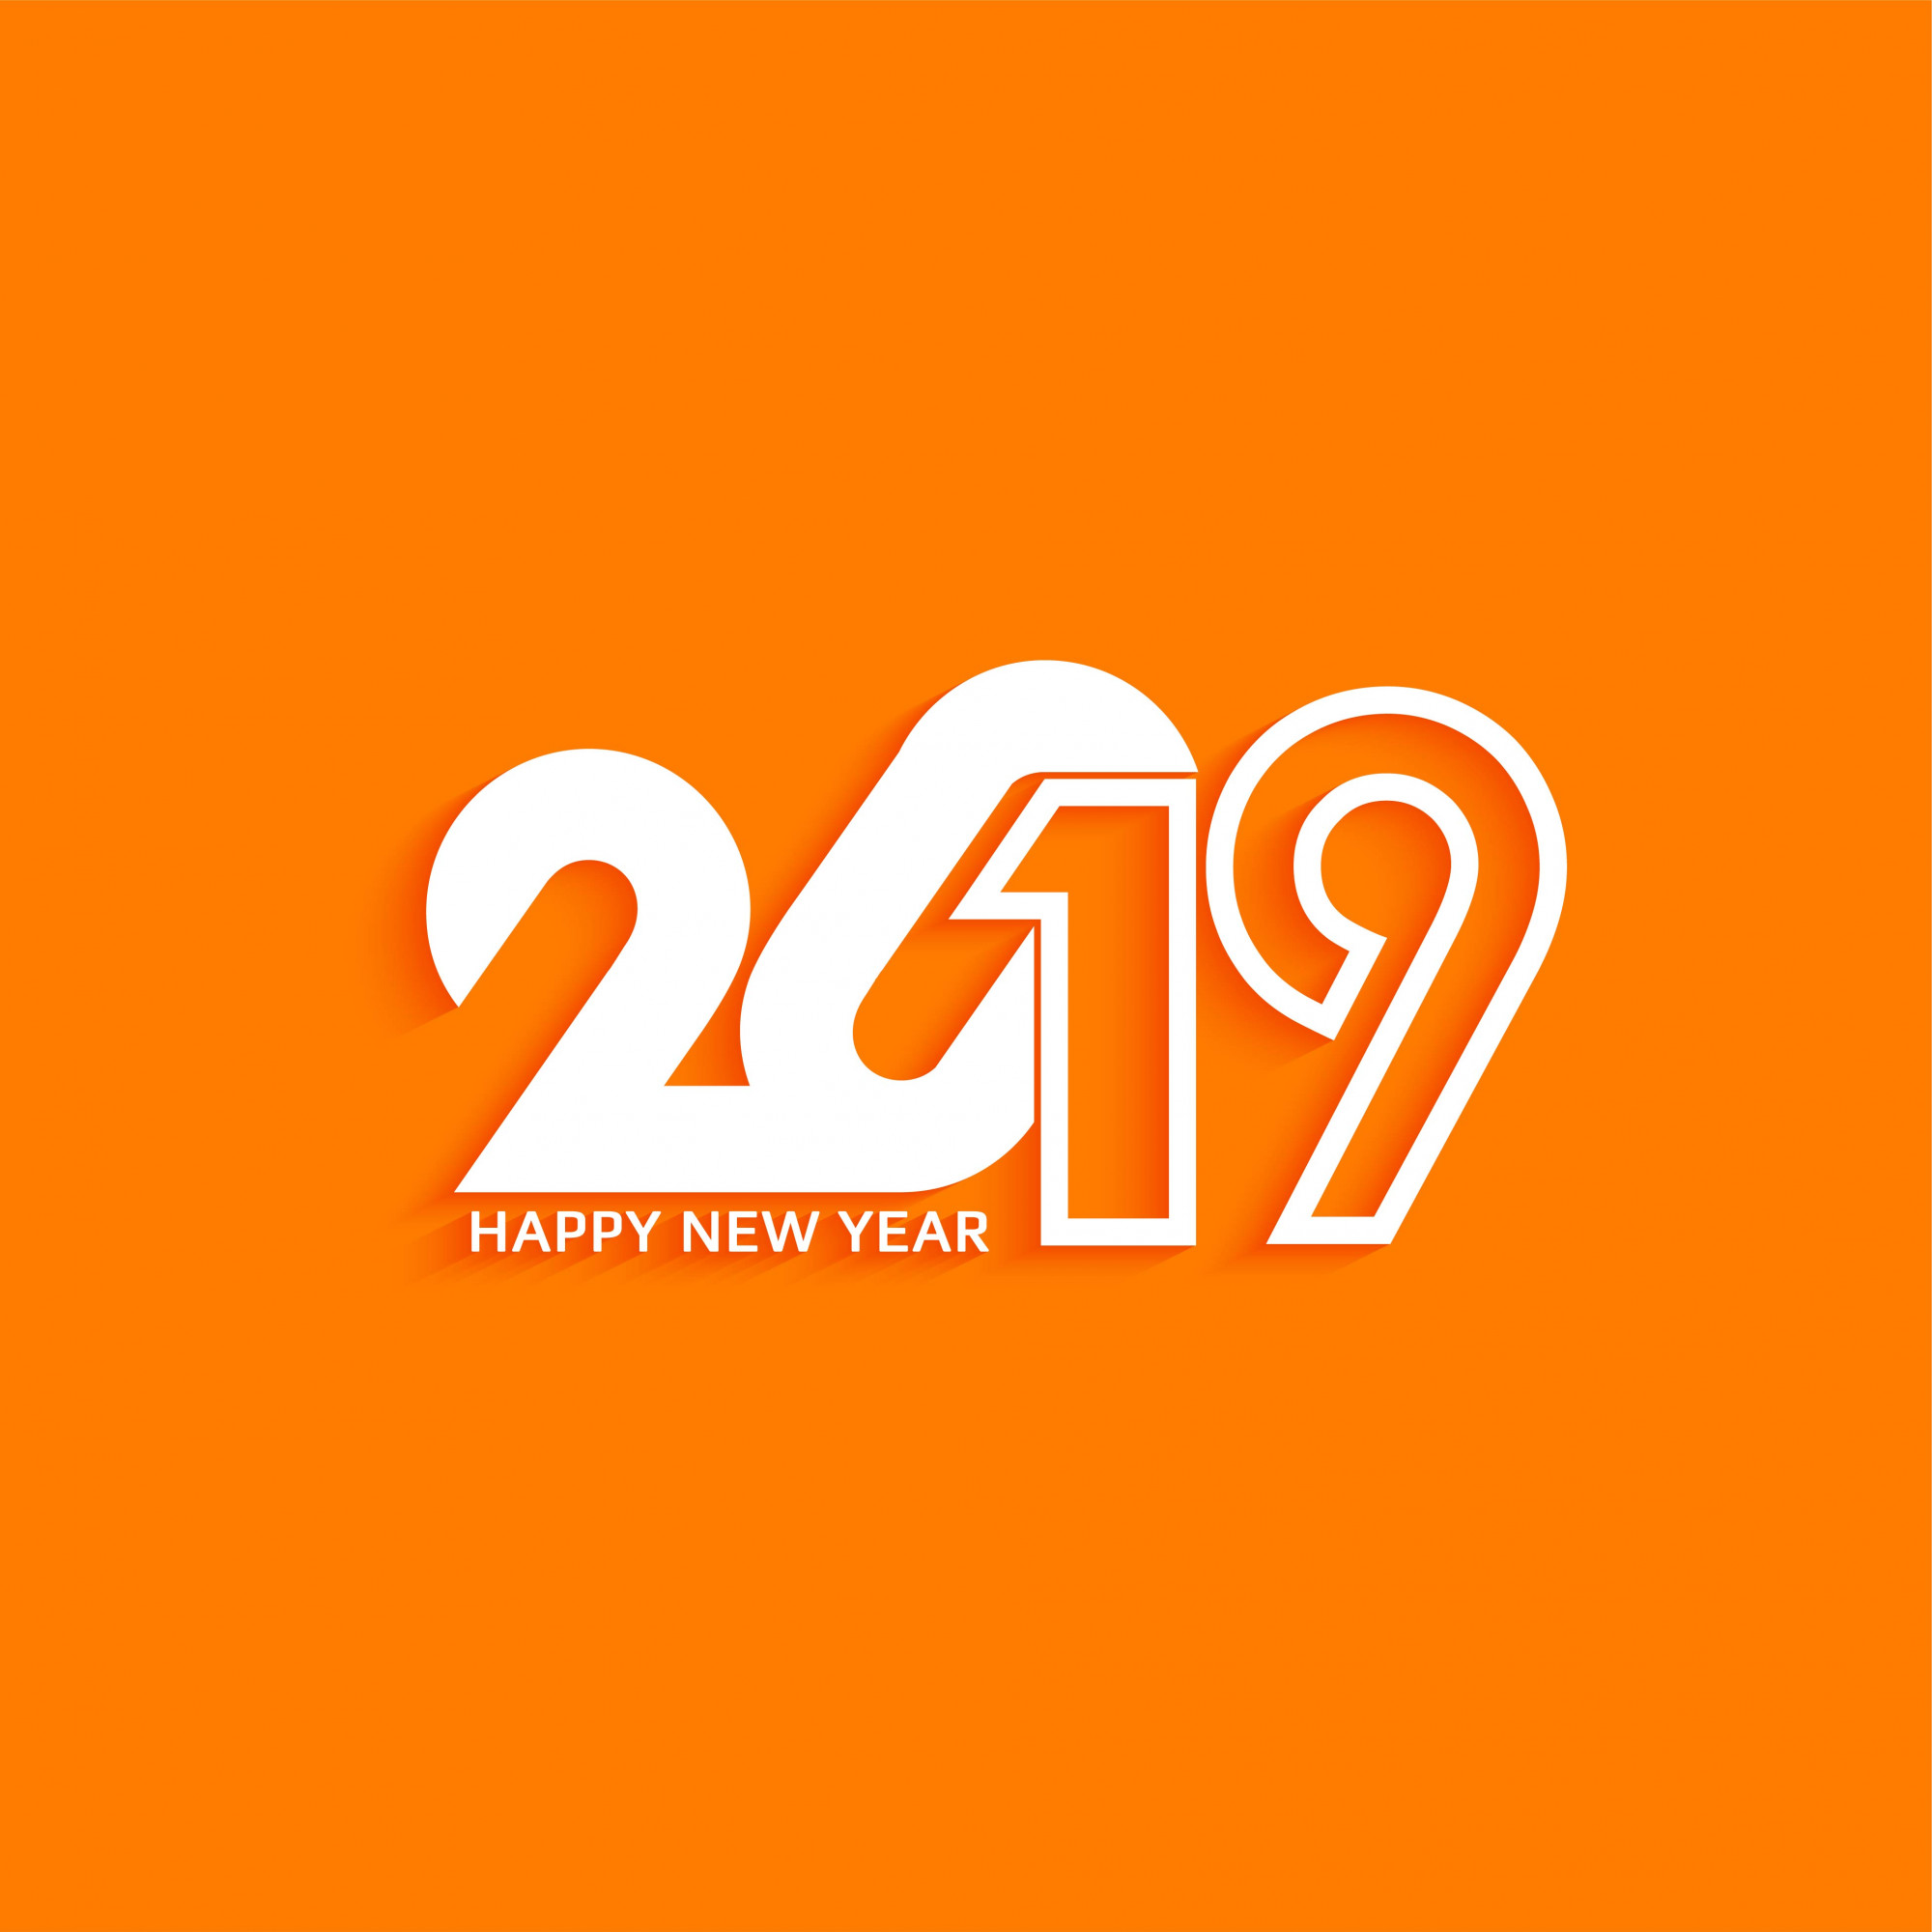 Abstract New Year 2019 stylish text design background